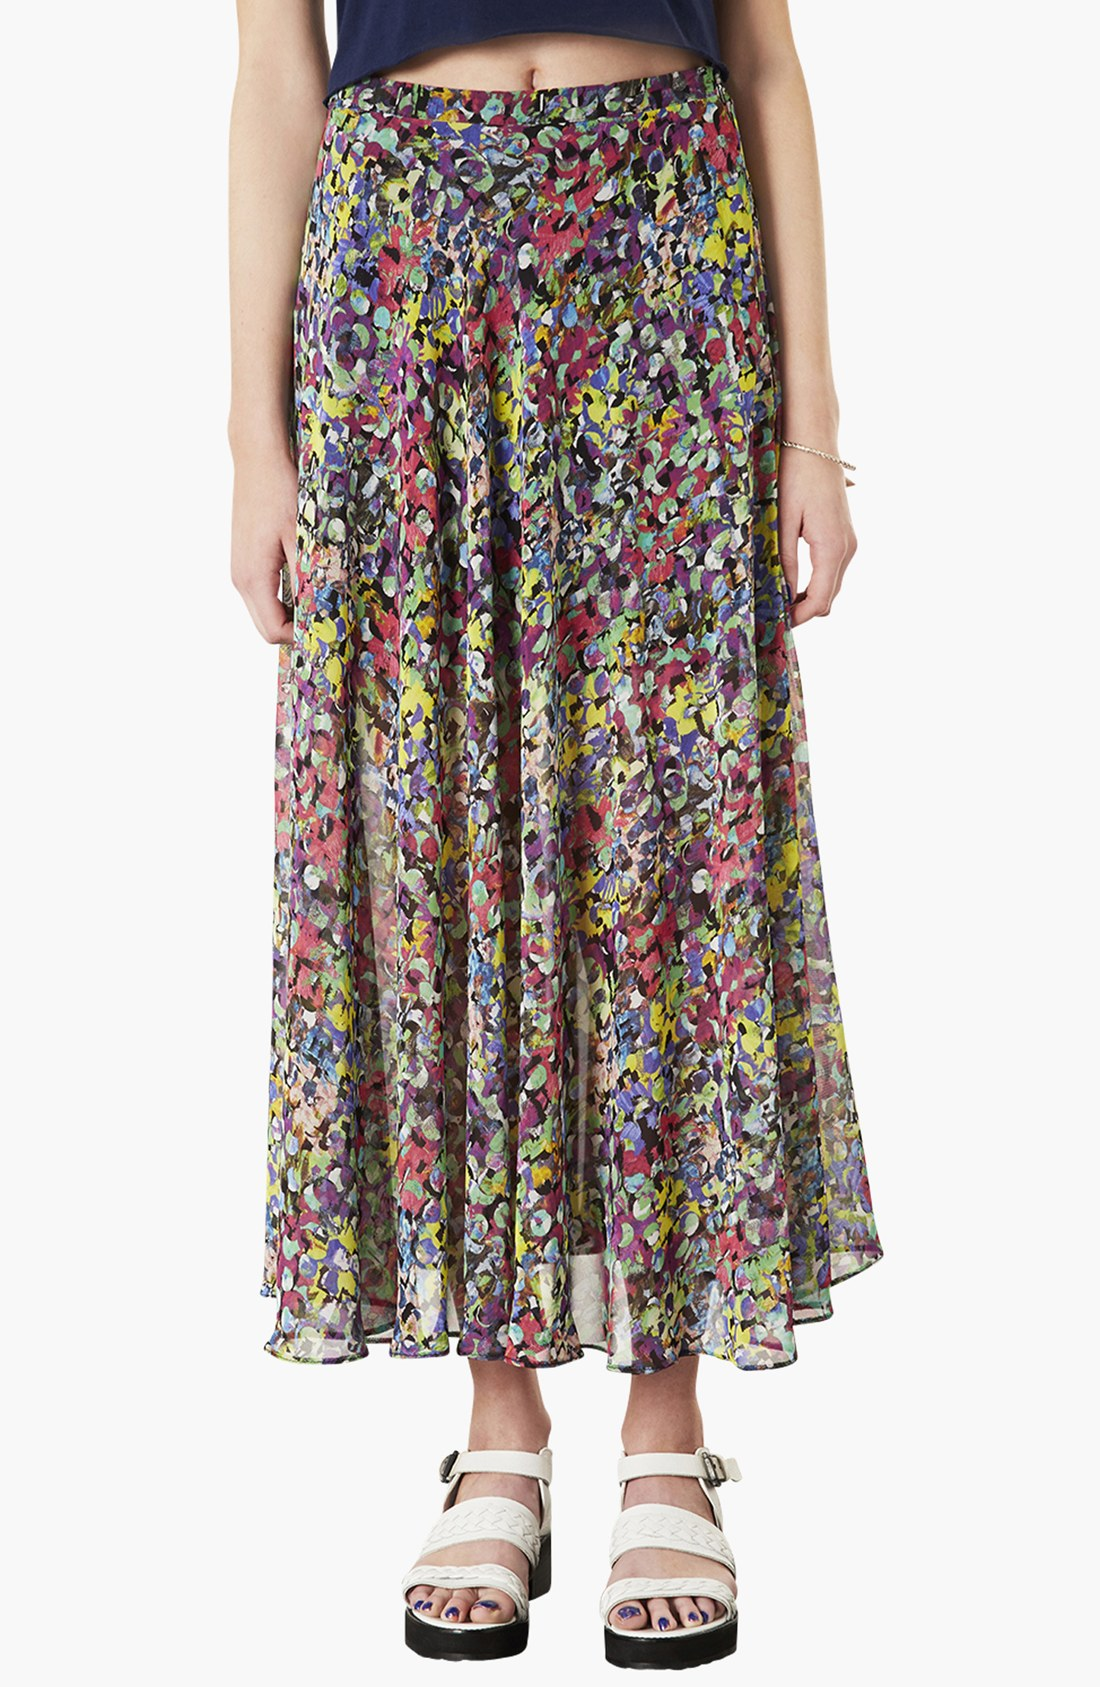 topshop dot floral print maxi skirt in green green multi